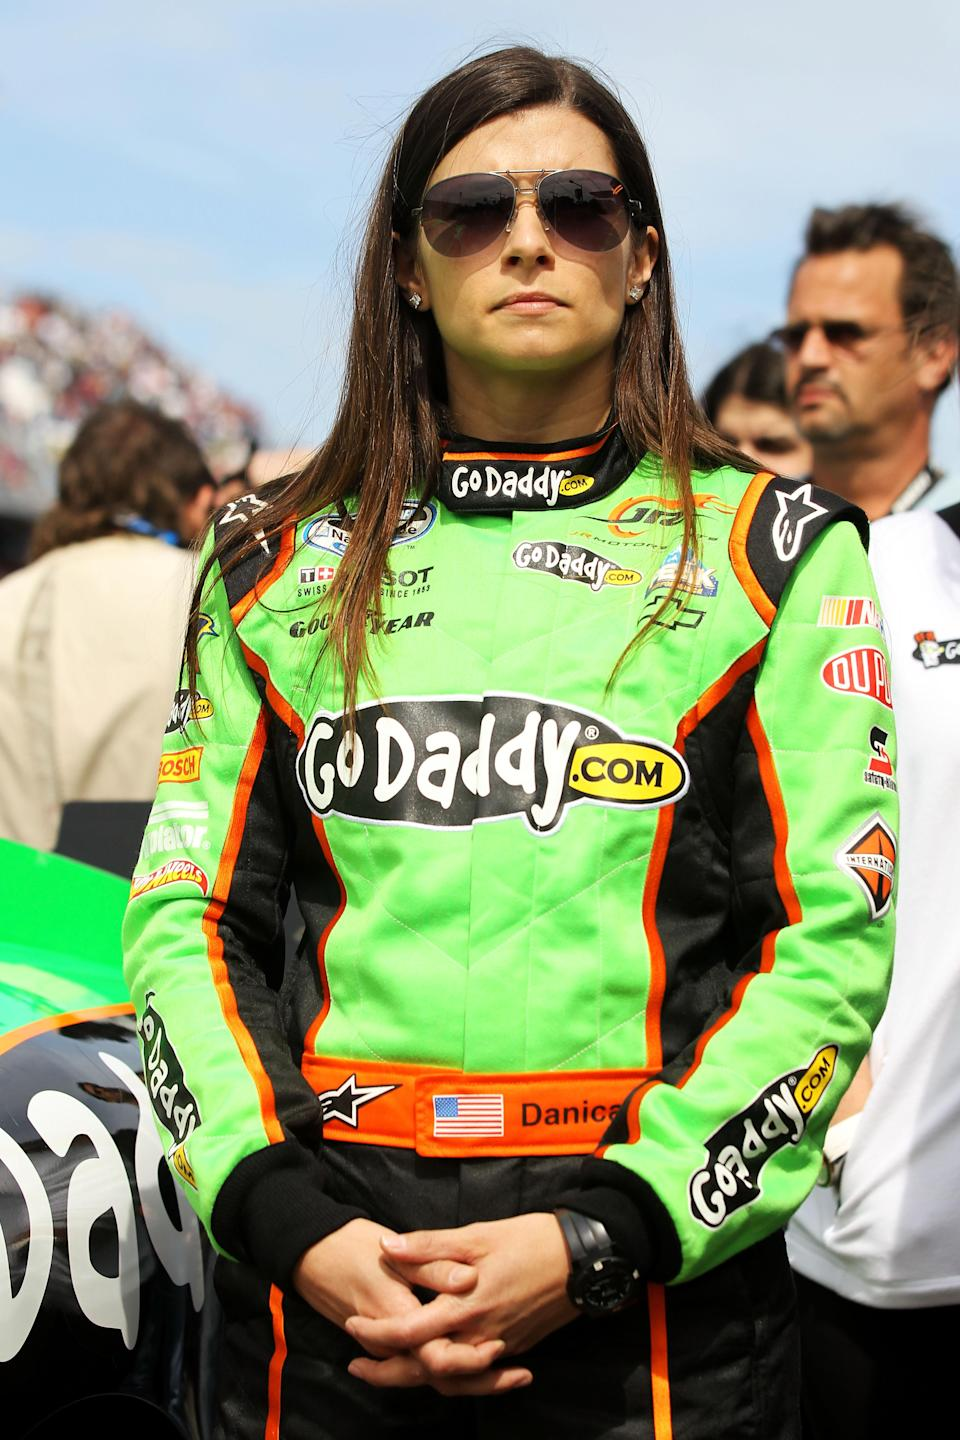 DAYTONA BEACH, FL - FEBRUARY 25: Danica Patrick, driver of the #7 GoDaddy.com Chevrolet, stands on the grid prior to the start of the NASCAR Nationwide Series DRIVE4COPD 300 at Daytona International Speedway on February 25, 2012 in Daytona Beach, Florida. (Photo by Todd Warshaw/Getty Images for NASCAR)